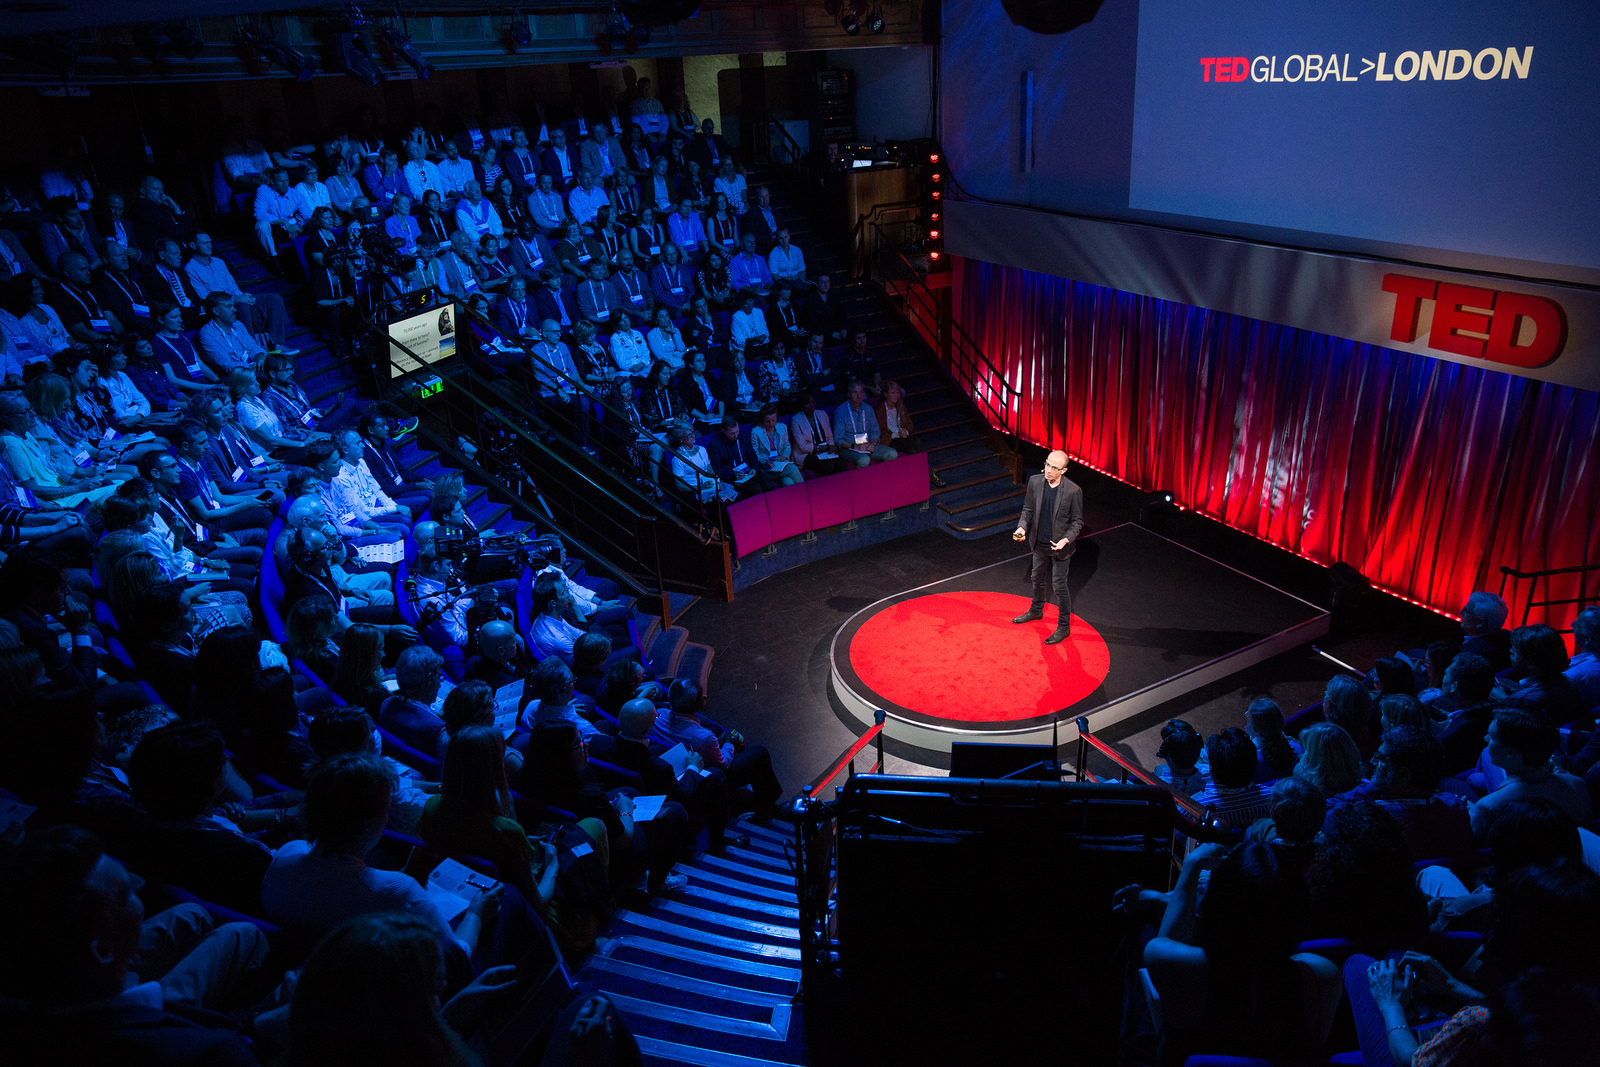 Why do humans rule the world? At TEDGlobalLondon, Yuval Noah Harris says it's our ability to imagine. Photo: James Duncan Davidson/TED